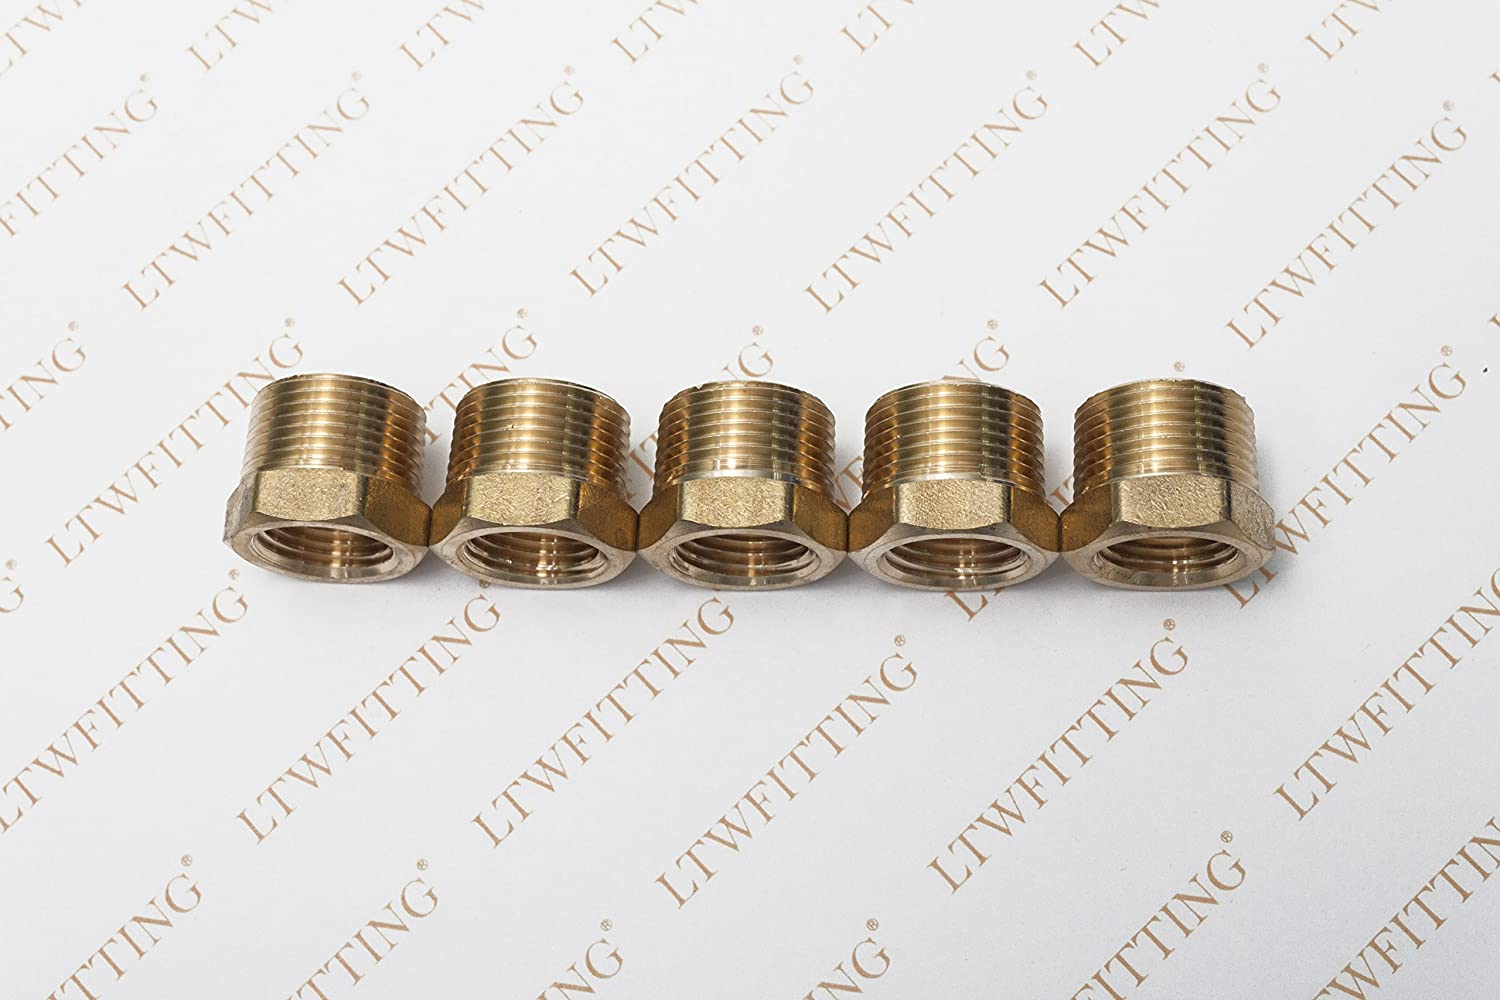 Pack of 5 LTWFITTING Brass Hex Pipe Bushing Reducer Fittings 3//4 Inch Male x 1//2 Inch Female NPT